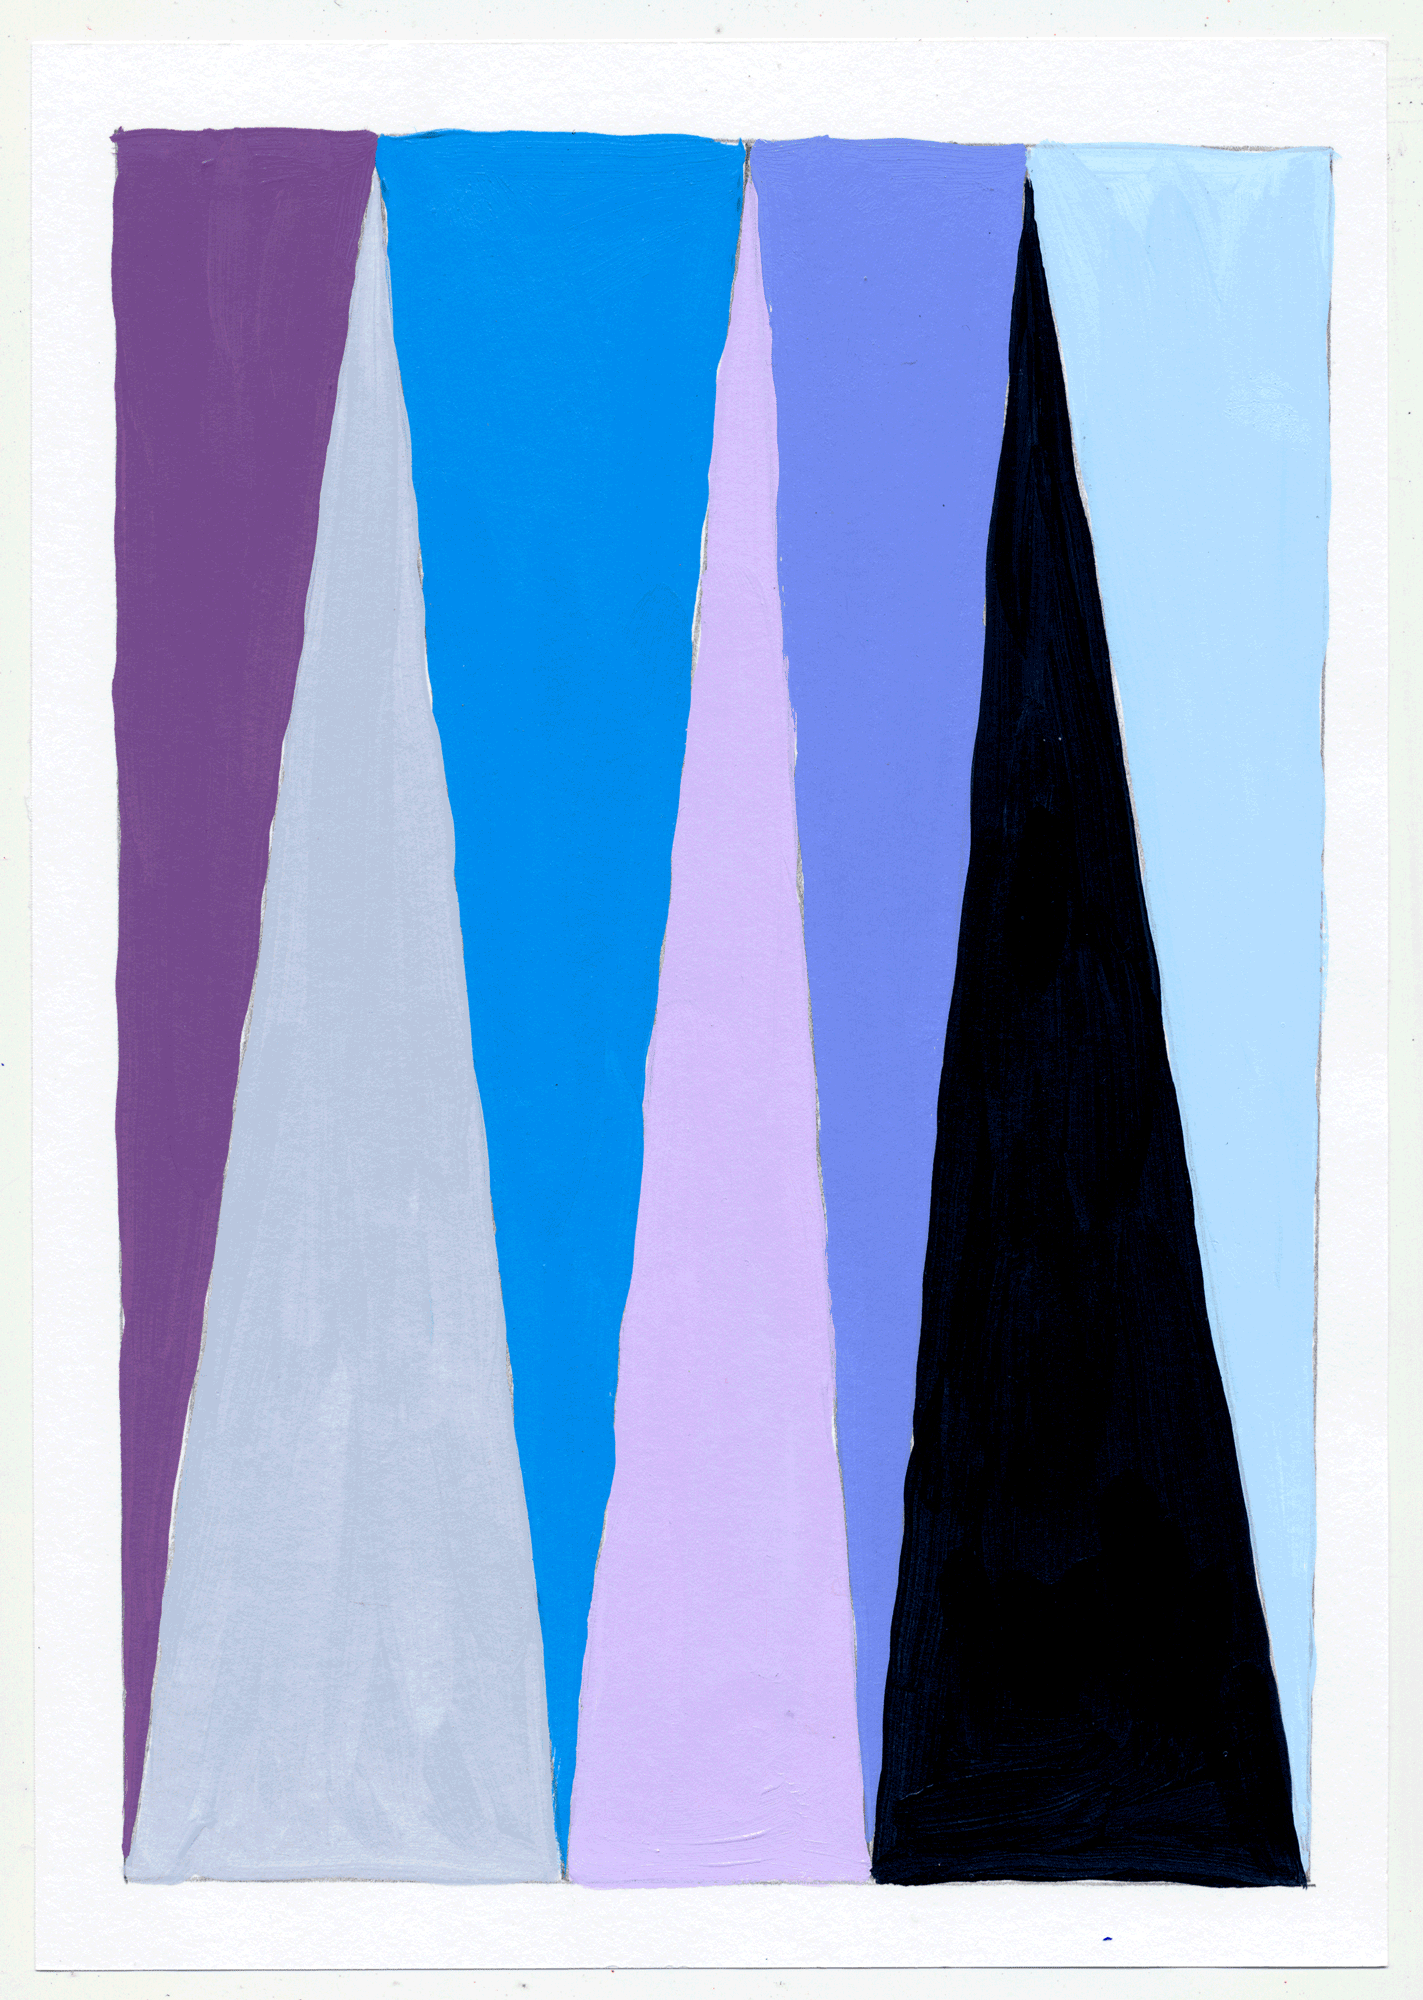 "NY17#29 10"" X 7"", acrylic on paper, 2017  available at Etsy   again with color studies! 3 sets of 3. using a primary color & its' complement to create subtle variations & muted colors."